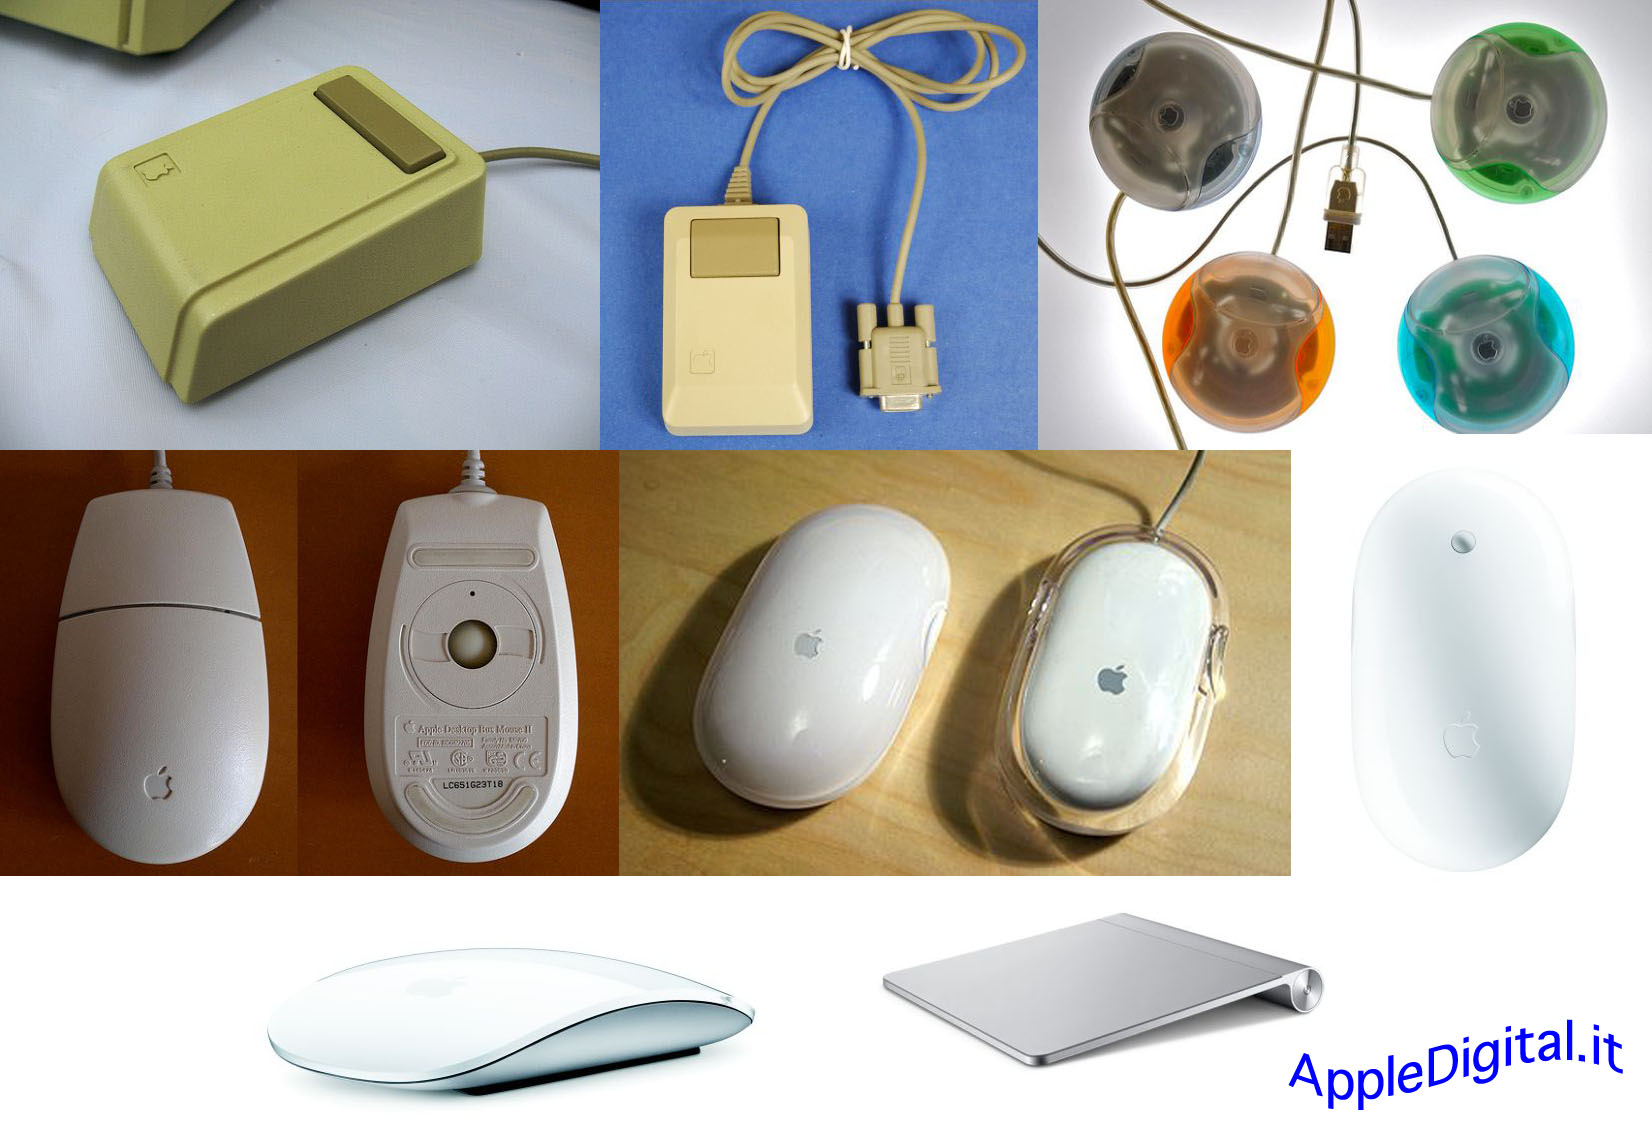 apple_mouse courtesy of AppleDigital.it. Mix by Cobain86.com